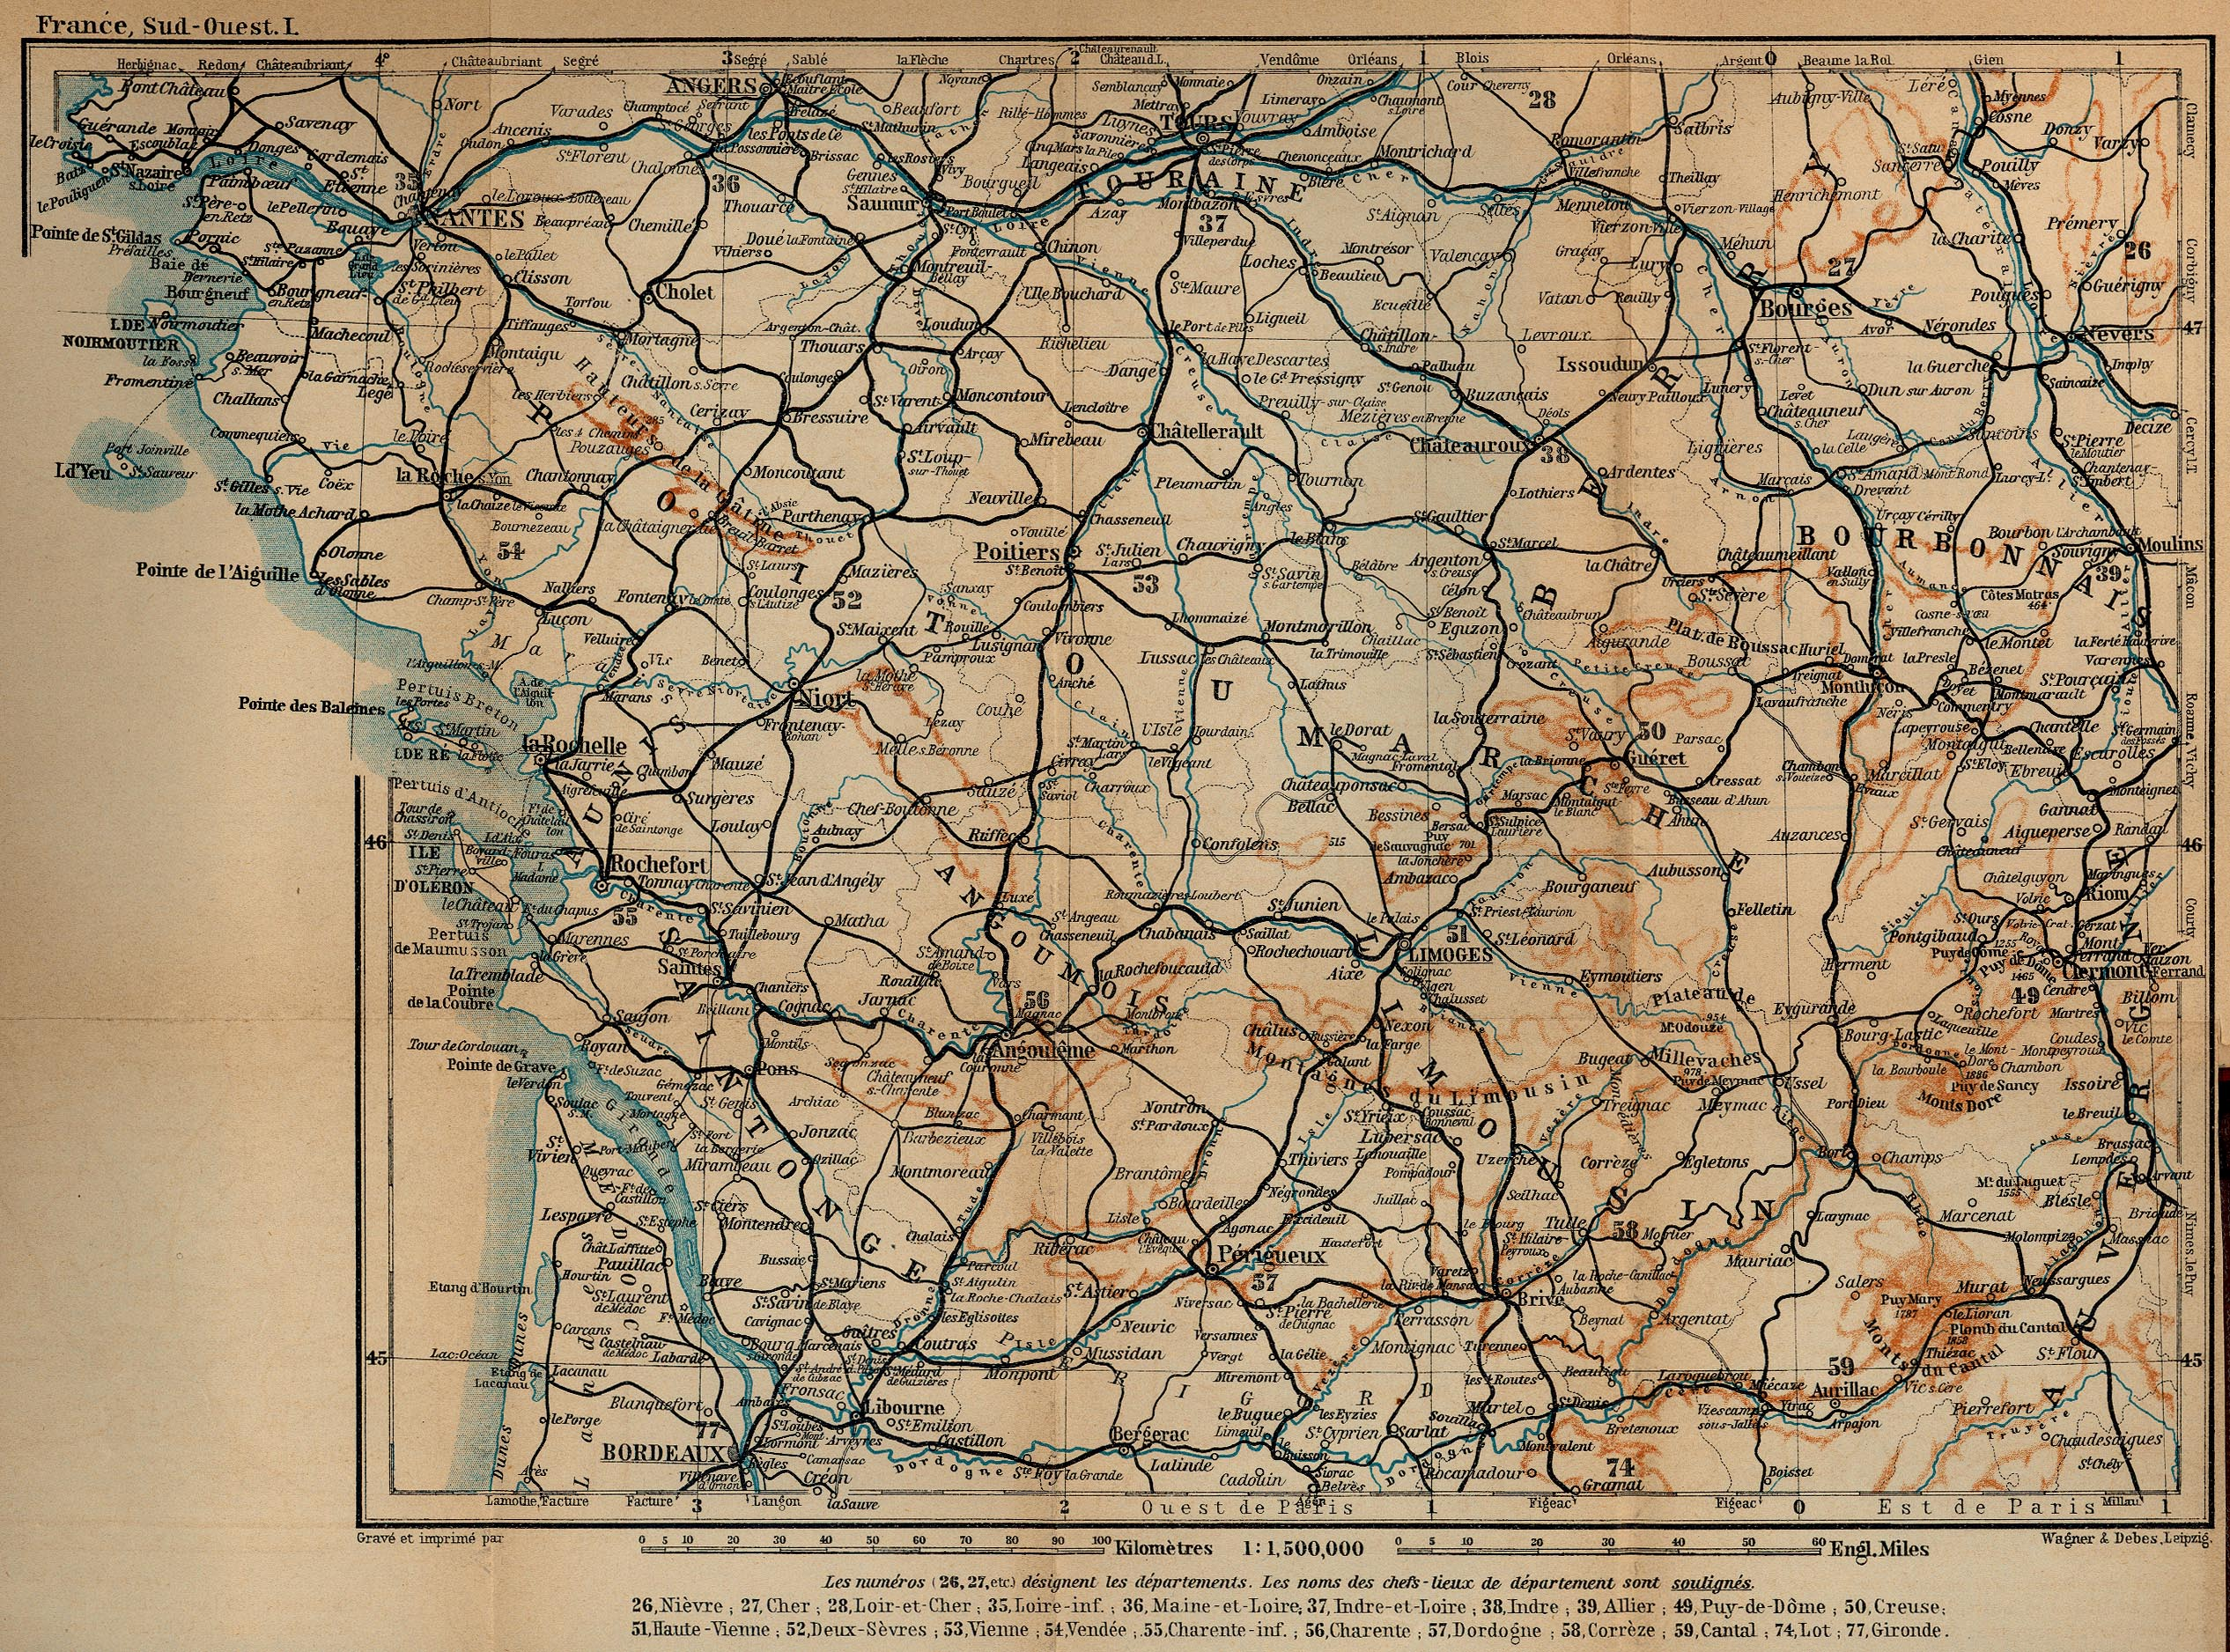 Map of South-Western France, from Tours to Bordeaux 1914